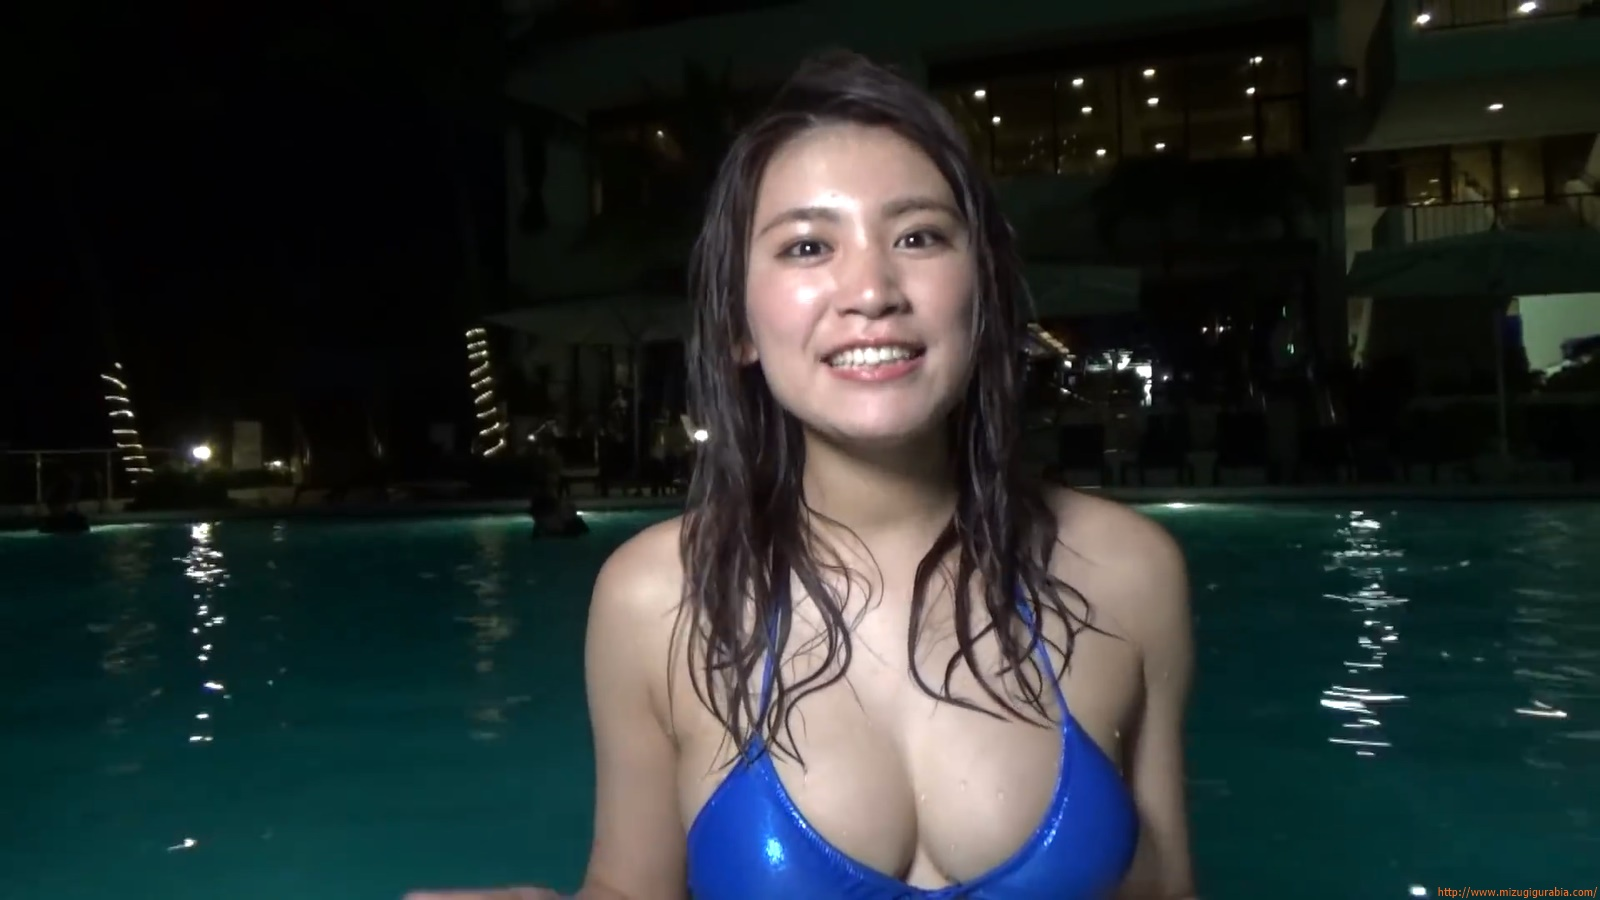 Shes a sunny bodice who continues to lead the way in gravure091